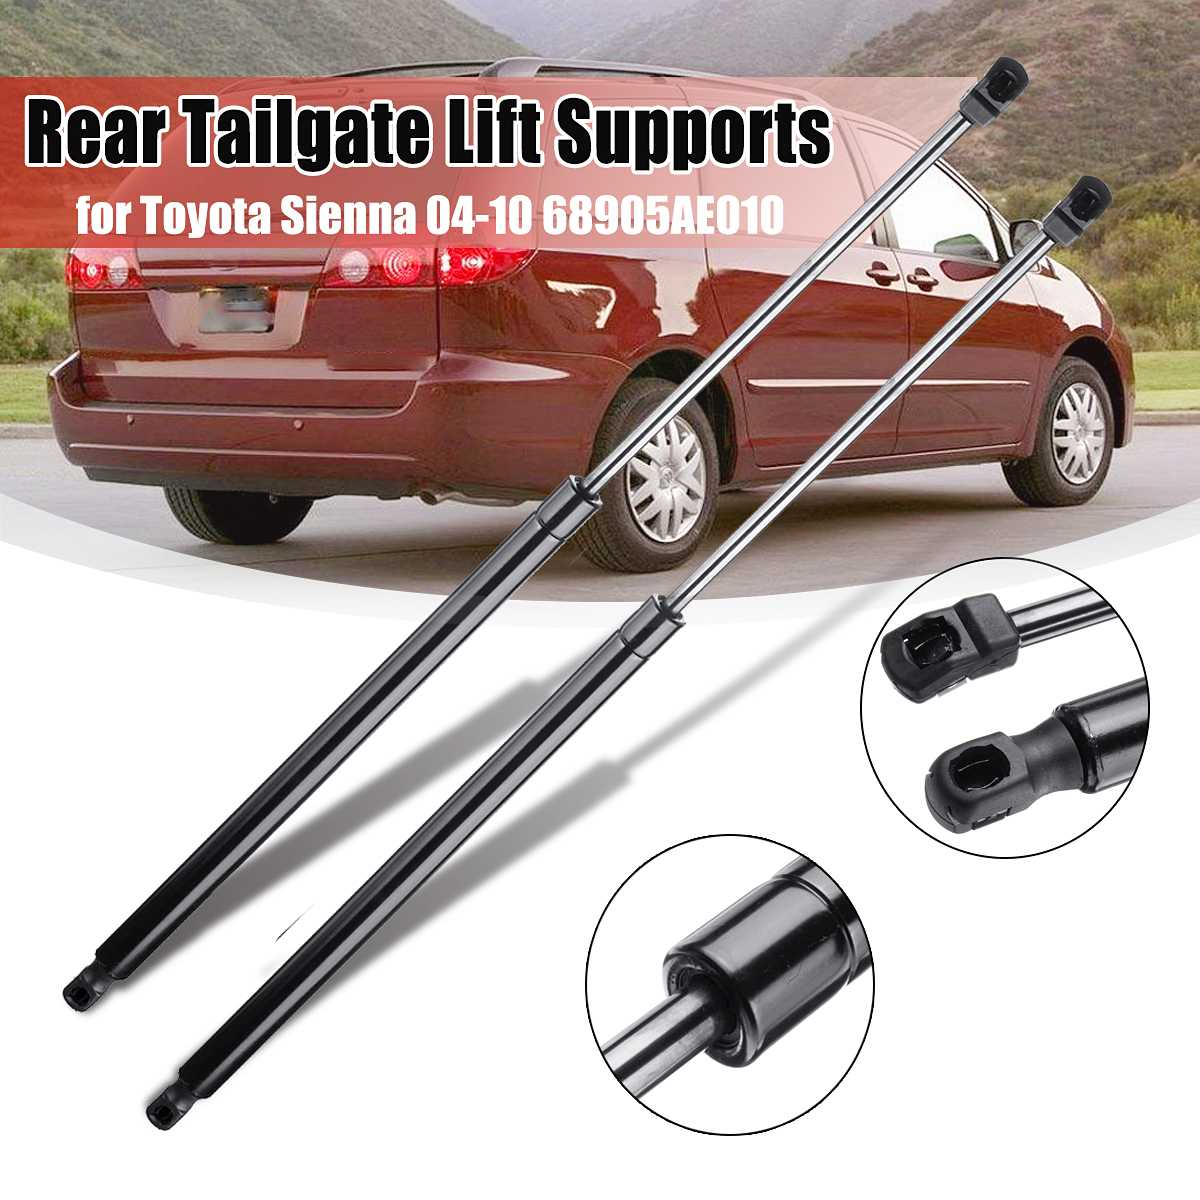 2Pcs Car Rear Trunk Tail Gate Tailgate Supports Strut Rod Arm Shocks Spring Bars 68905AE010 SG229013 For Toyota Sienna 2004-20102Pcs Car Rear Trunk Tail Gate Tailgate Supports Strut Rod Arm Shocks Spring Bars 68905AE010 SG229013 For Toyota Sienna 2004-2010